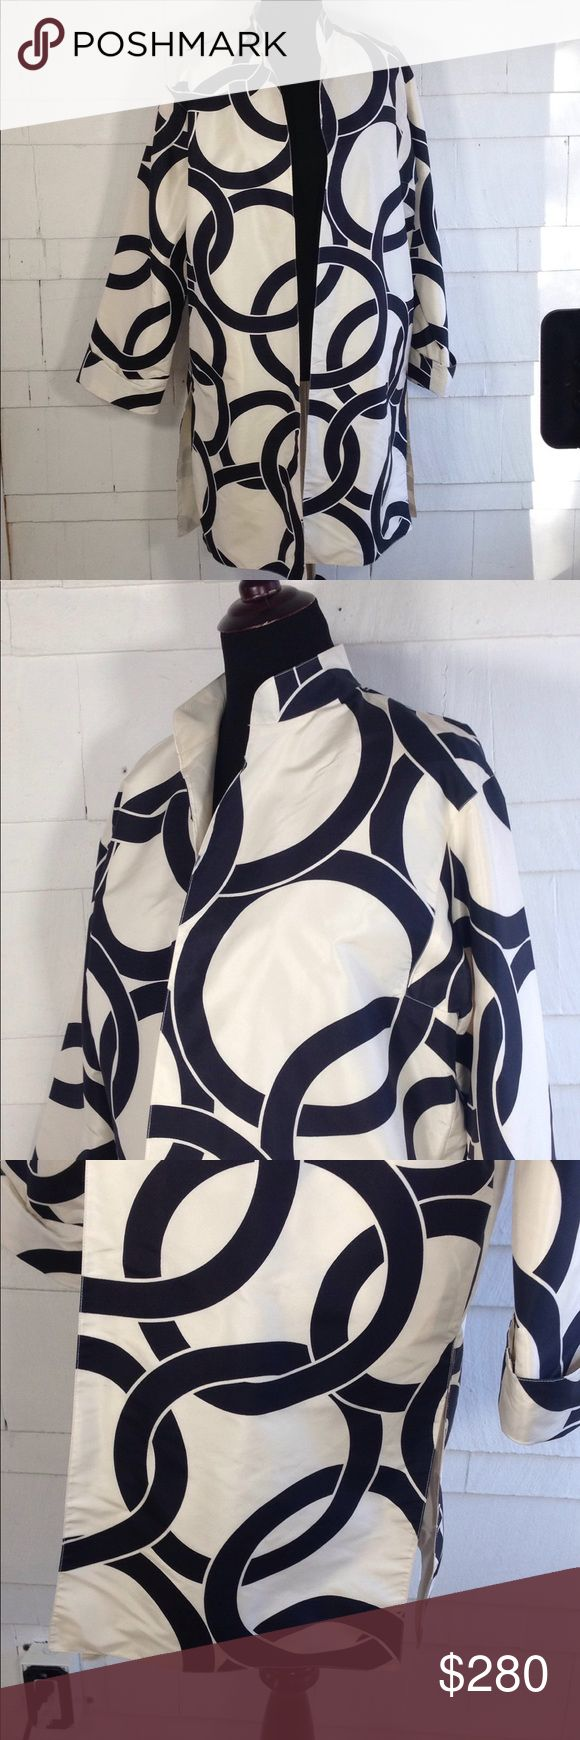 Valentino silk mod jacket 12 Gorgeous 100% silk jacket. Valentino. Authentic and made in Italy. Size 12 but could also be worn oversized on a smaller frame. Showing on a size 6 mannequin. Thin lightweight spring summer material. Excellent condition!!!! Valentino Jackets & Coats